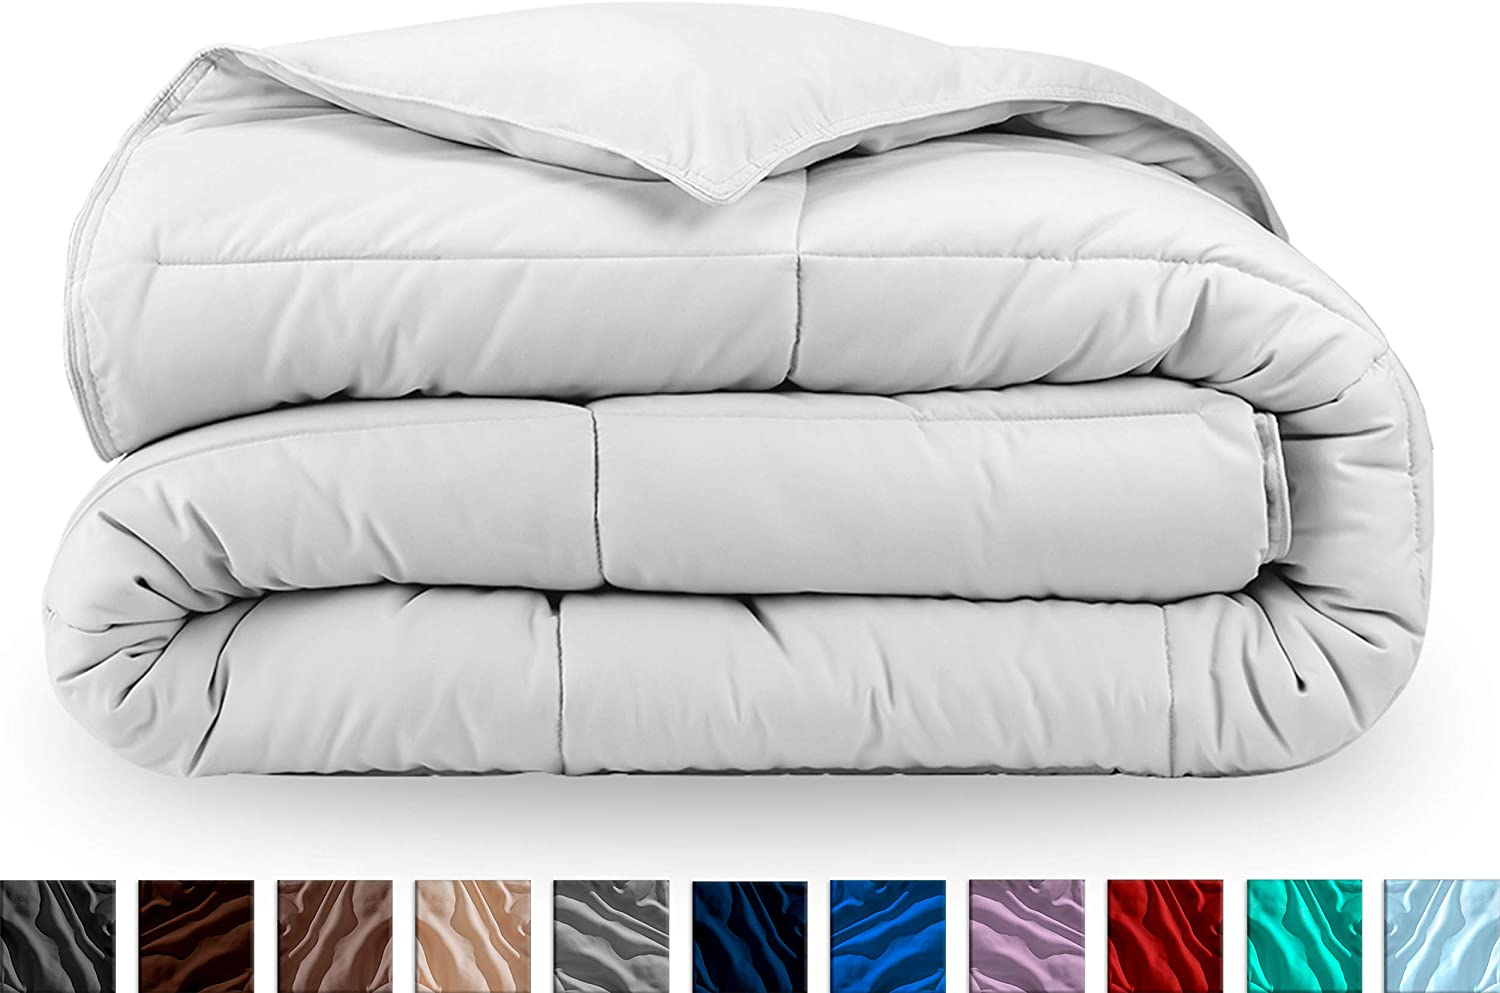 Bare Home Kids Comforter/Duvet Insert - Twin/Twin Extra Long - Goose Down Alternative - Ultra-Soft - Premium 1800 Series - Hypoallergenic - All Season Breathable Warmth (Twin/Twin XL, White)